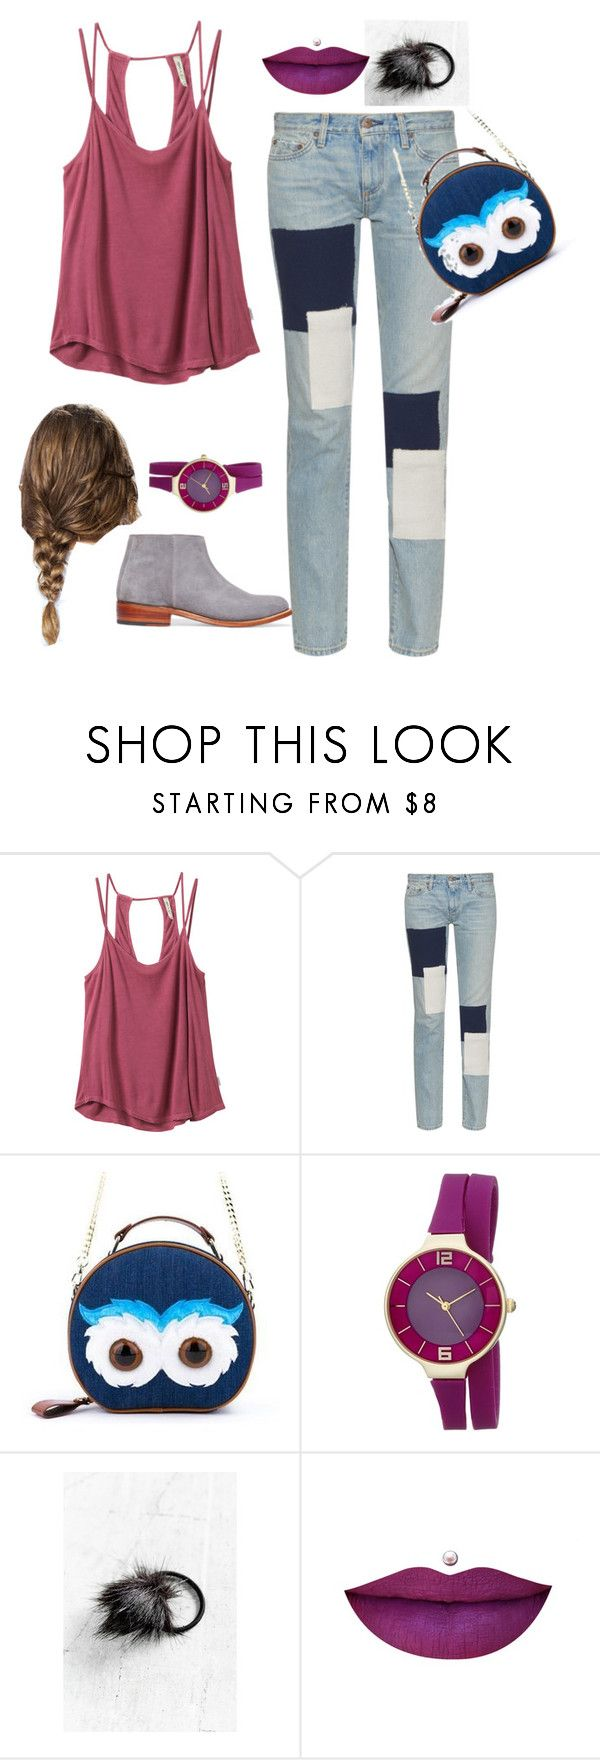 Simple Hang Out by dinyvia on Polyvore featuring RVCA, Simon Miller, Grenson, SimpleOutfits and hangout